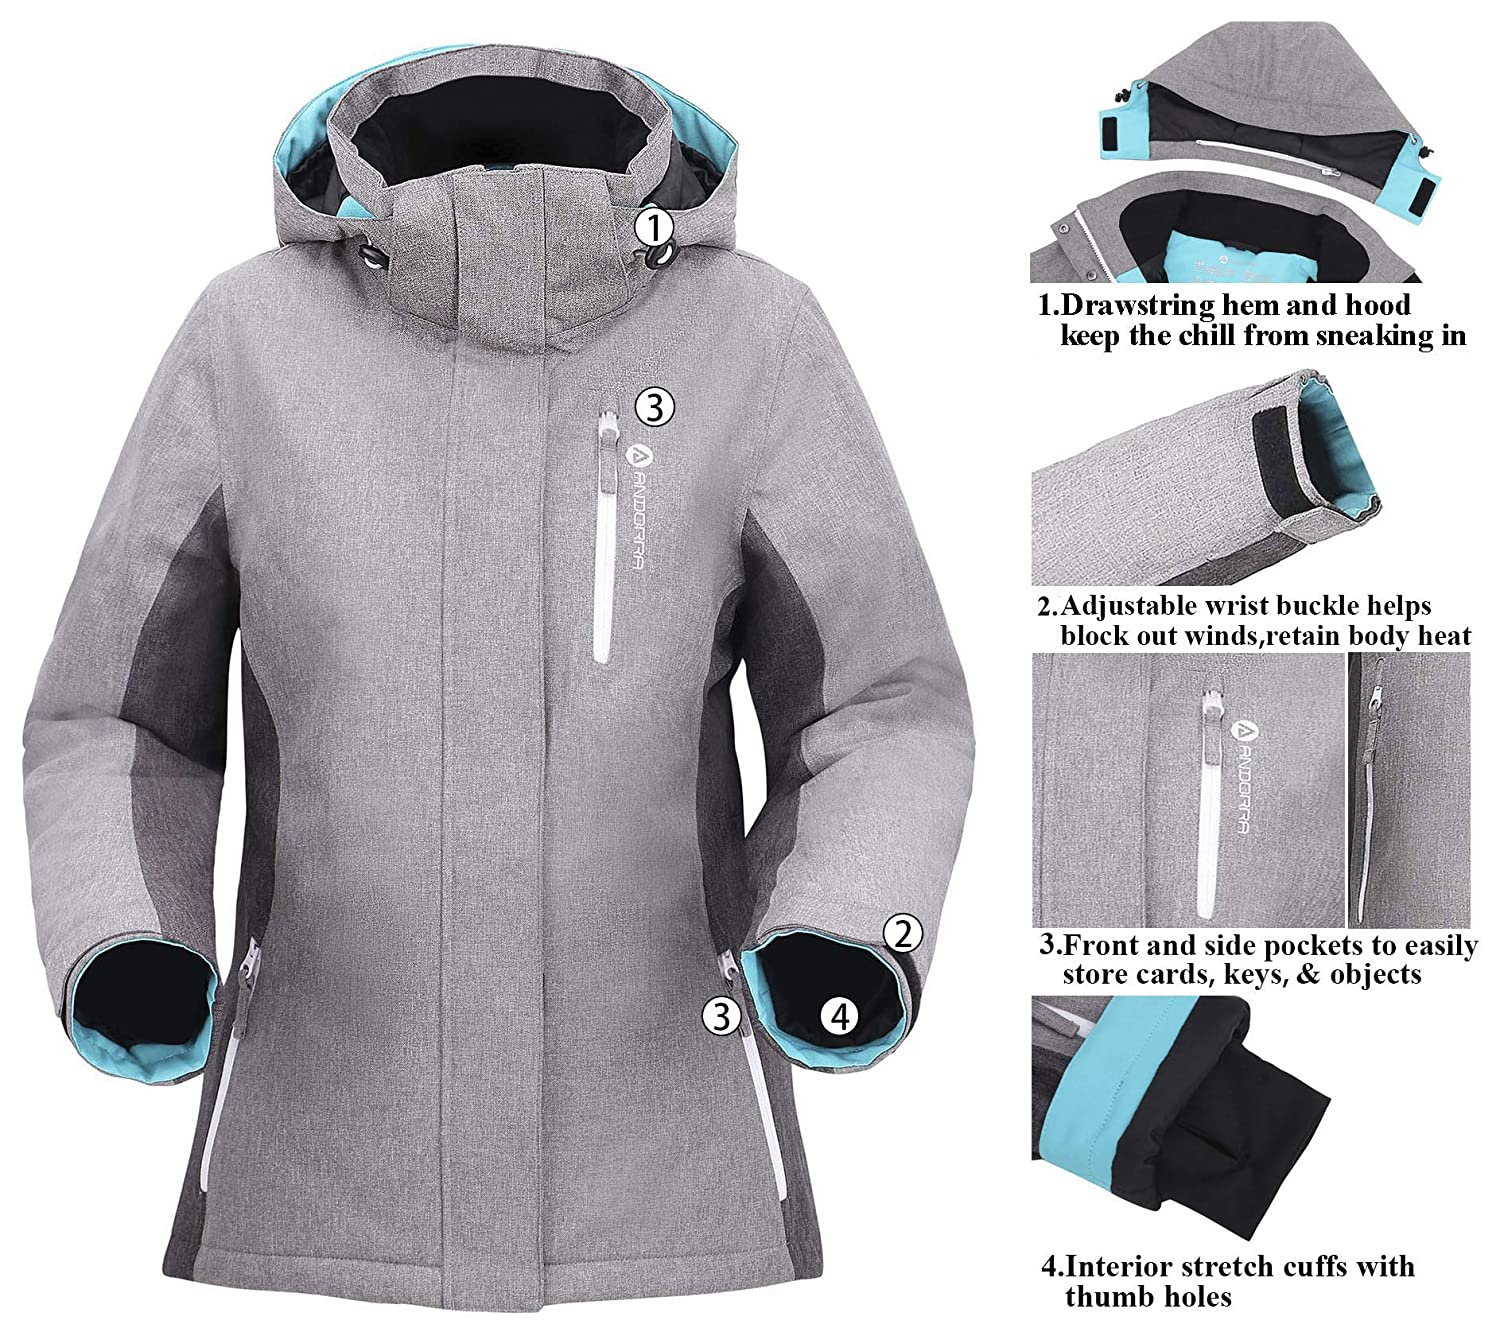 Andorra Womens Performance Insulated Ski Jacket with Zip-Off Hood